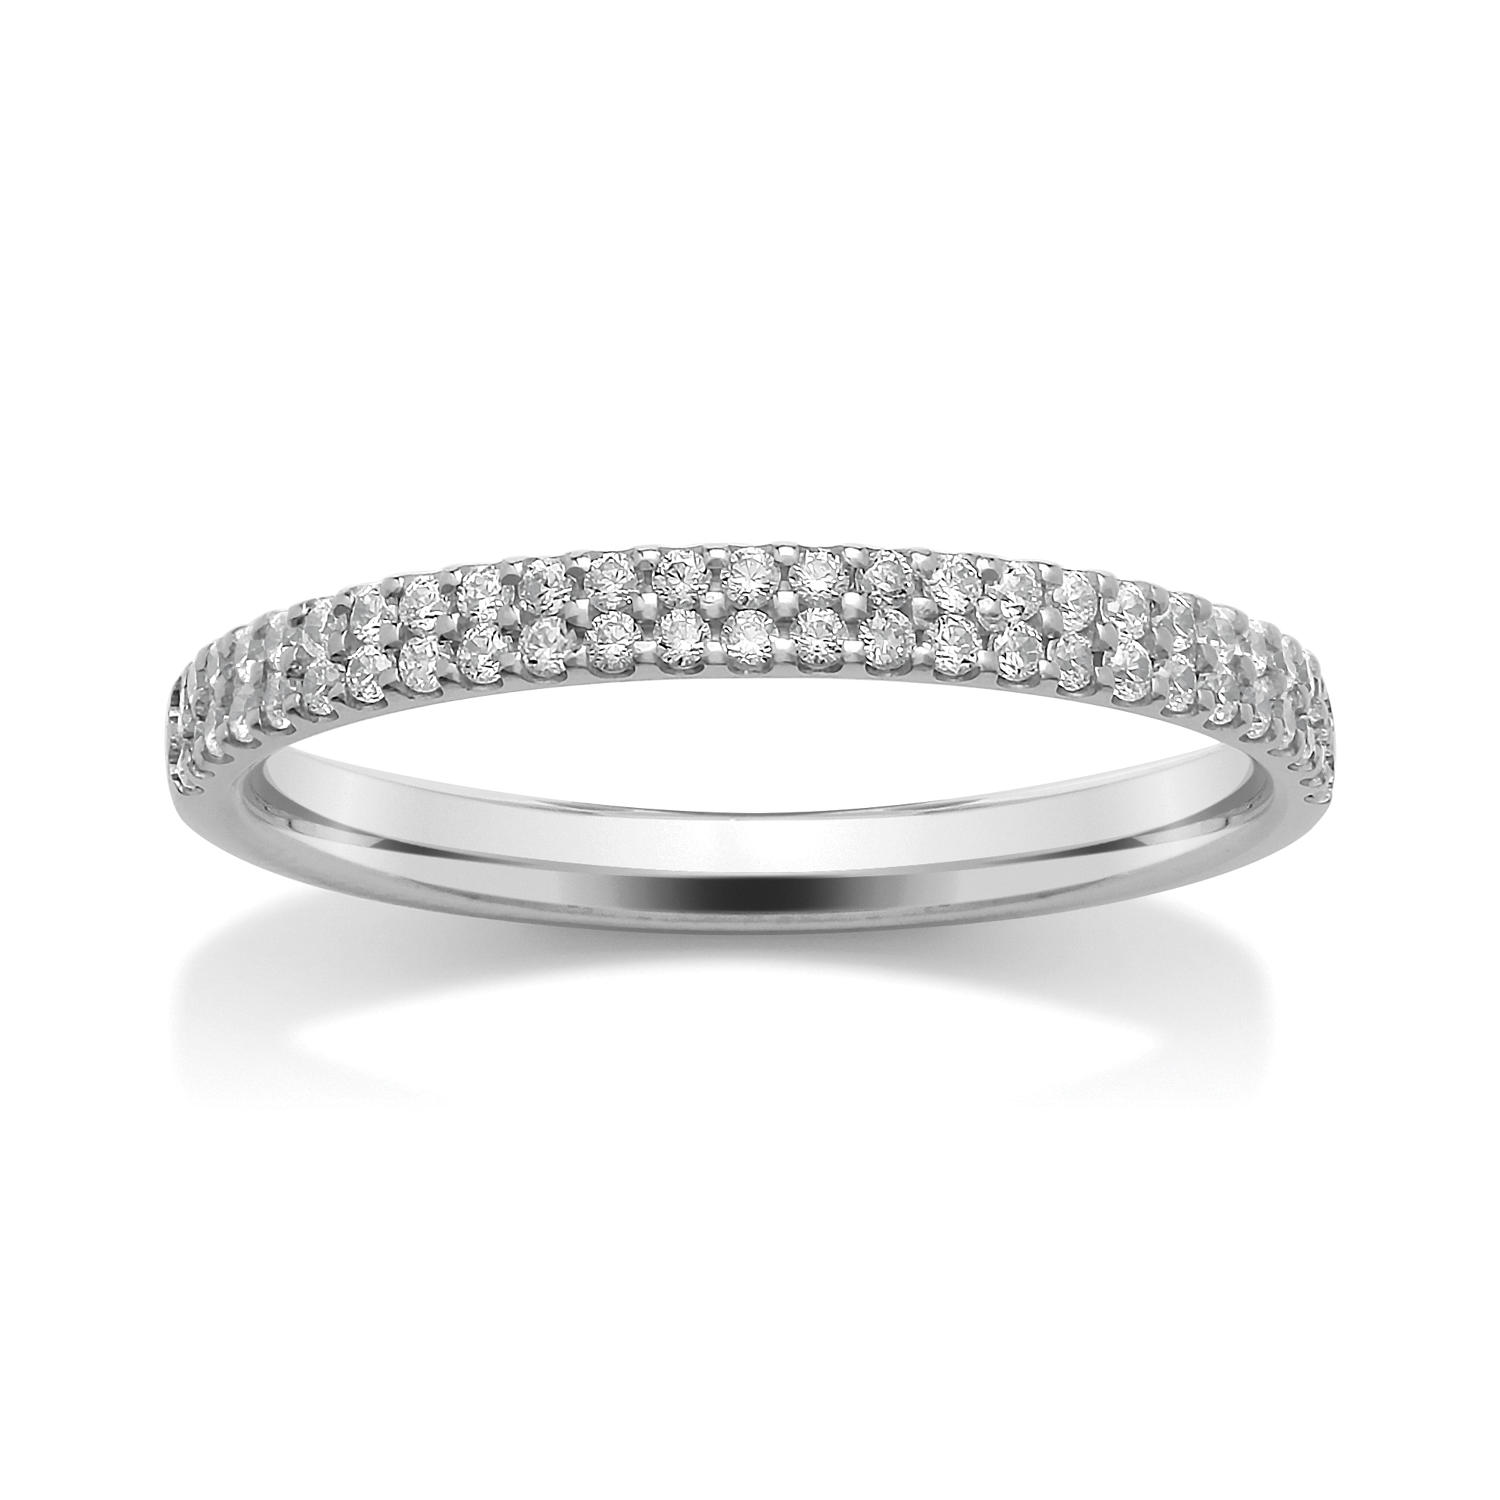 2.2mm Double Row, Claw Set Diamond Ring